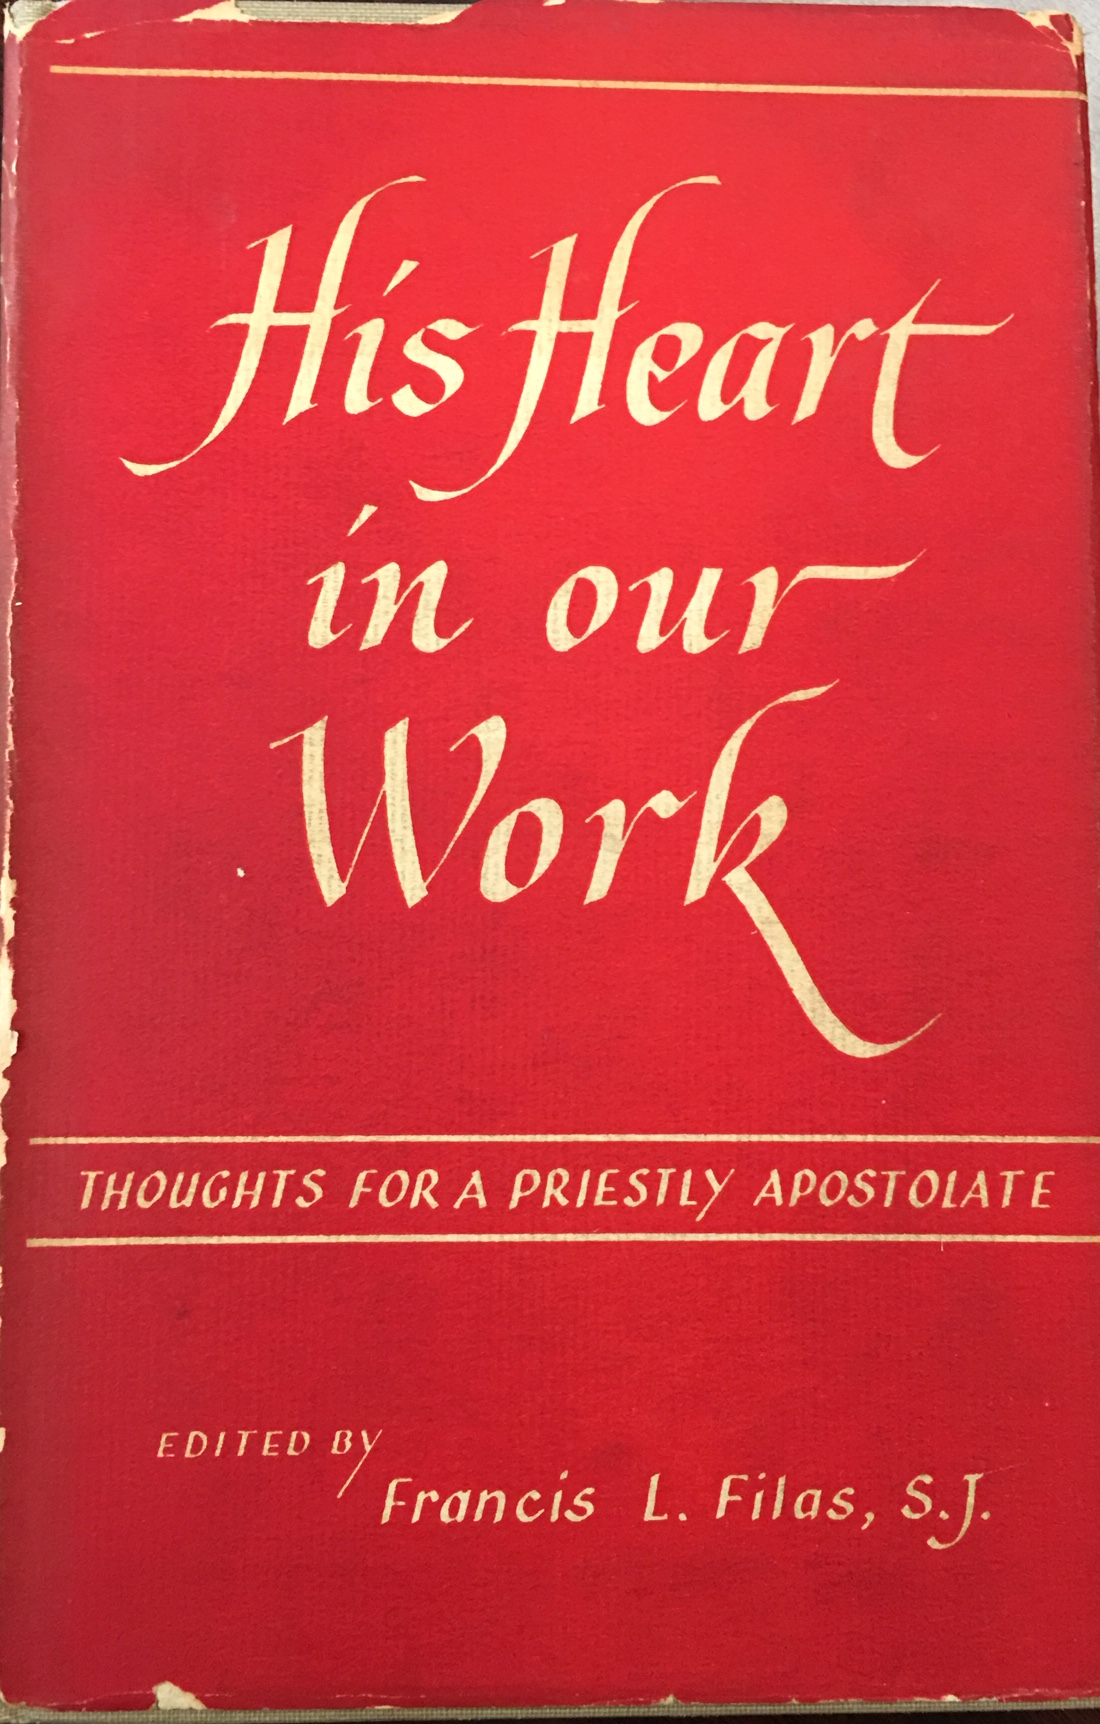 Image for His Heart In Our Work: Thoughts For a Priestly Apostolate